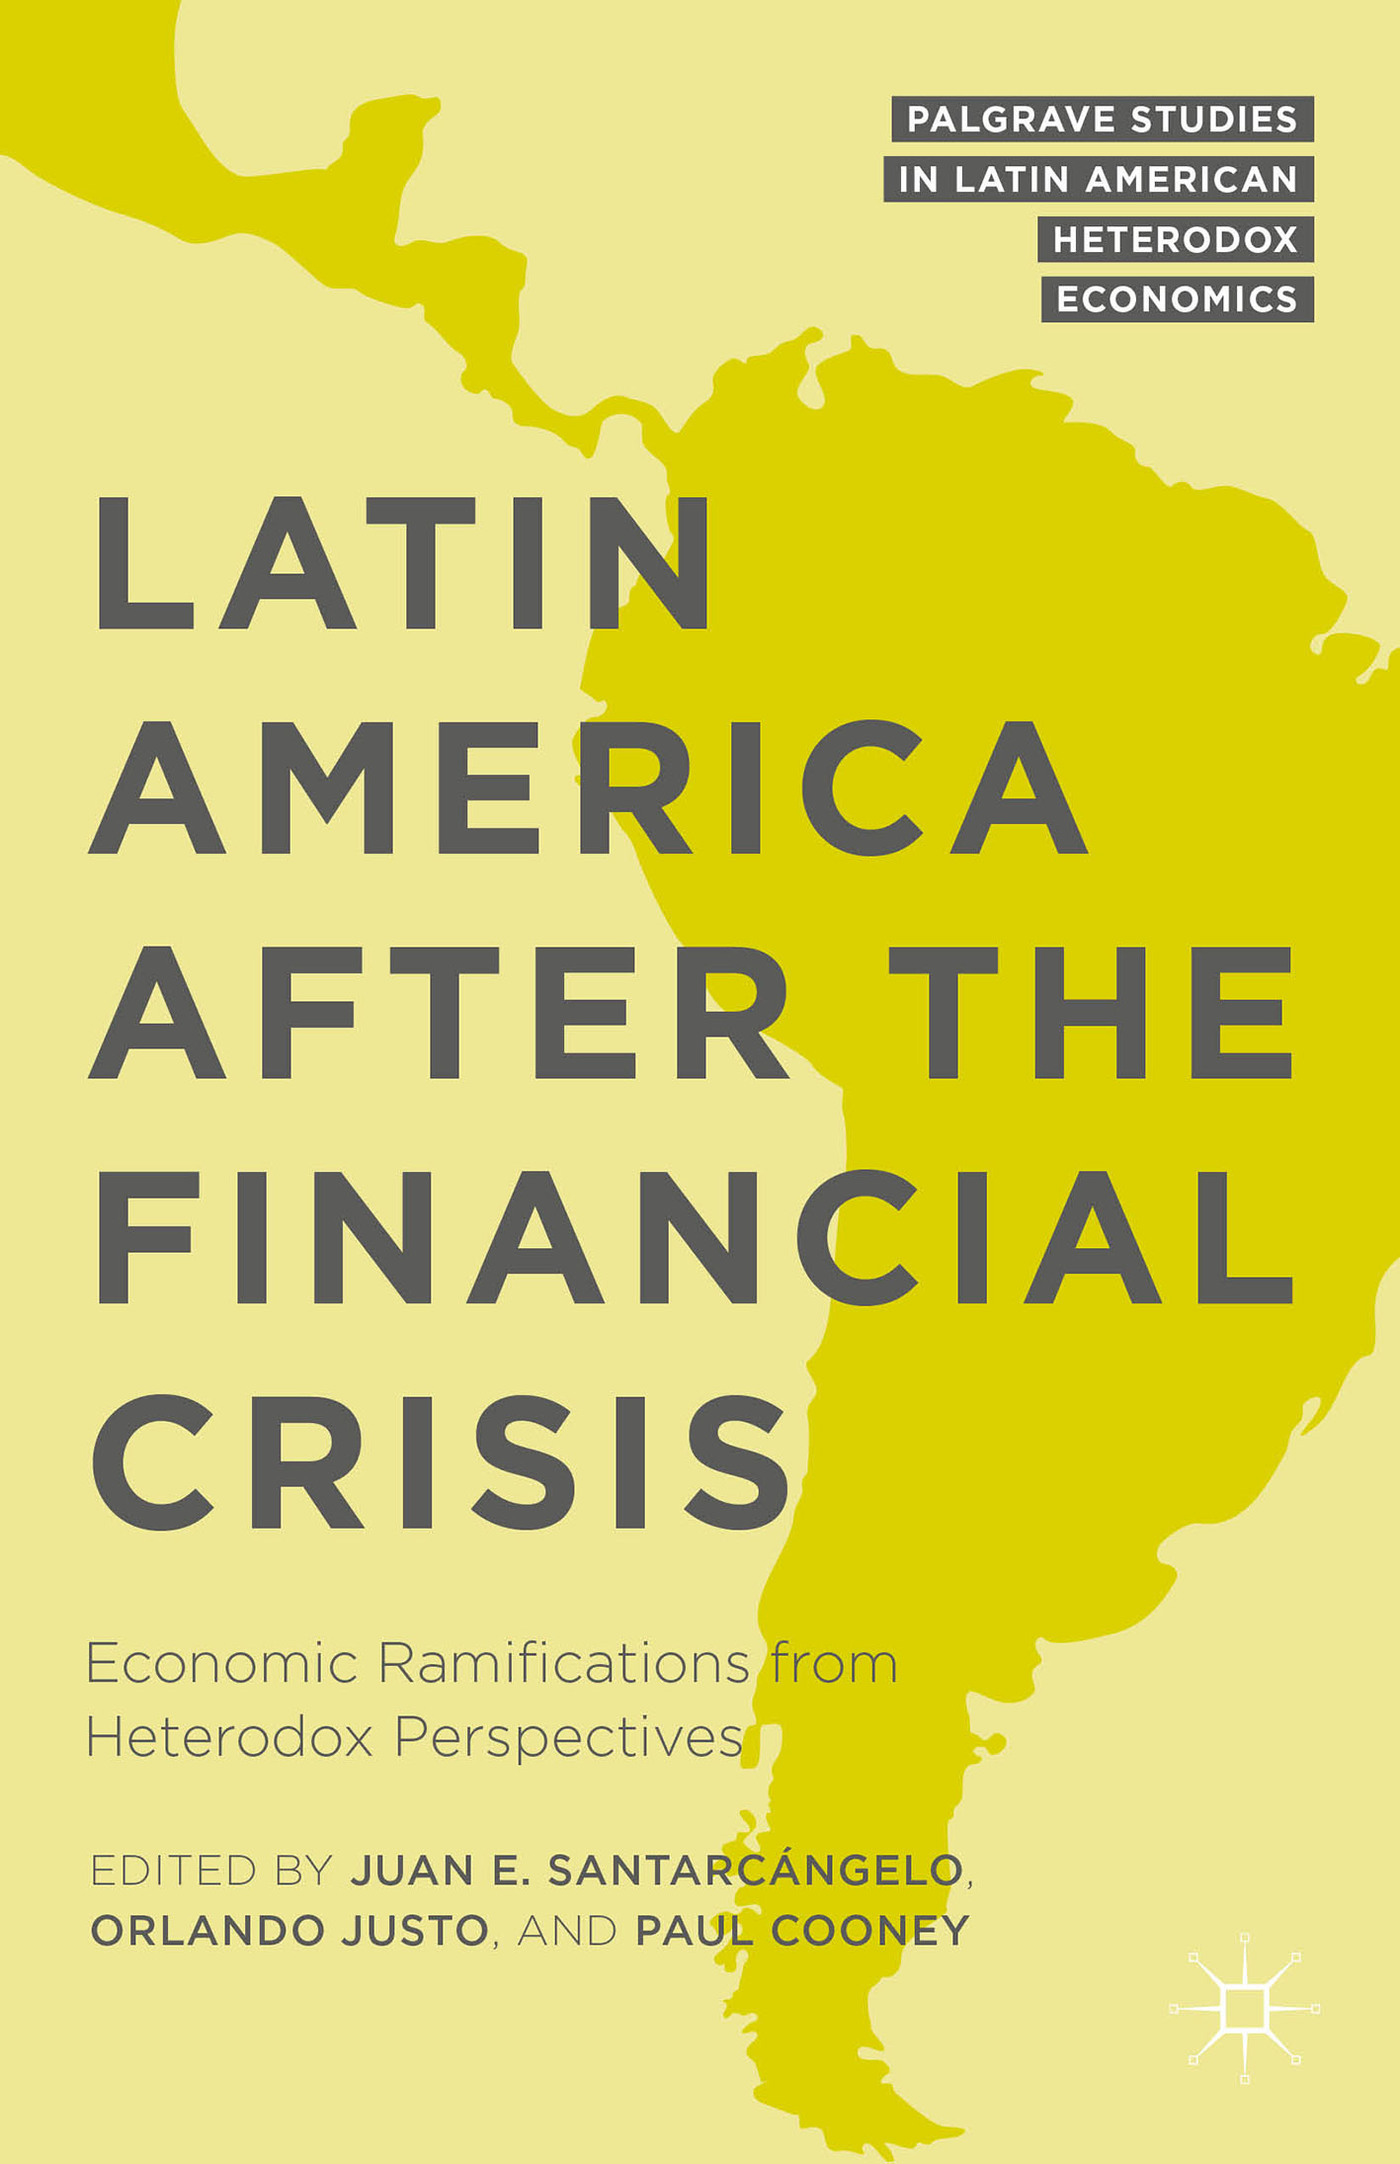 Latin America after the Financial Crisis Economic Ramifications from Heterodox Perspectives